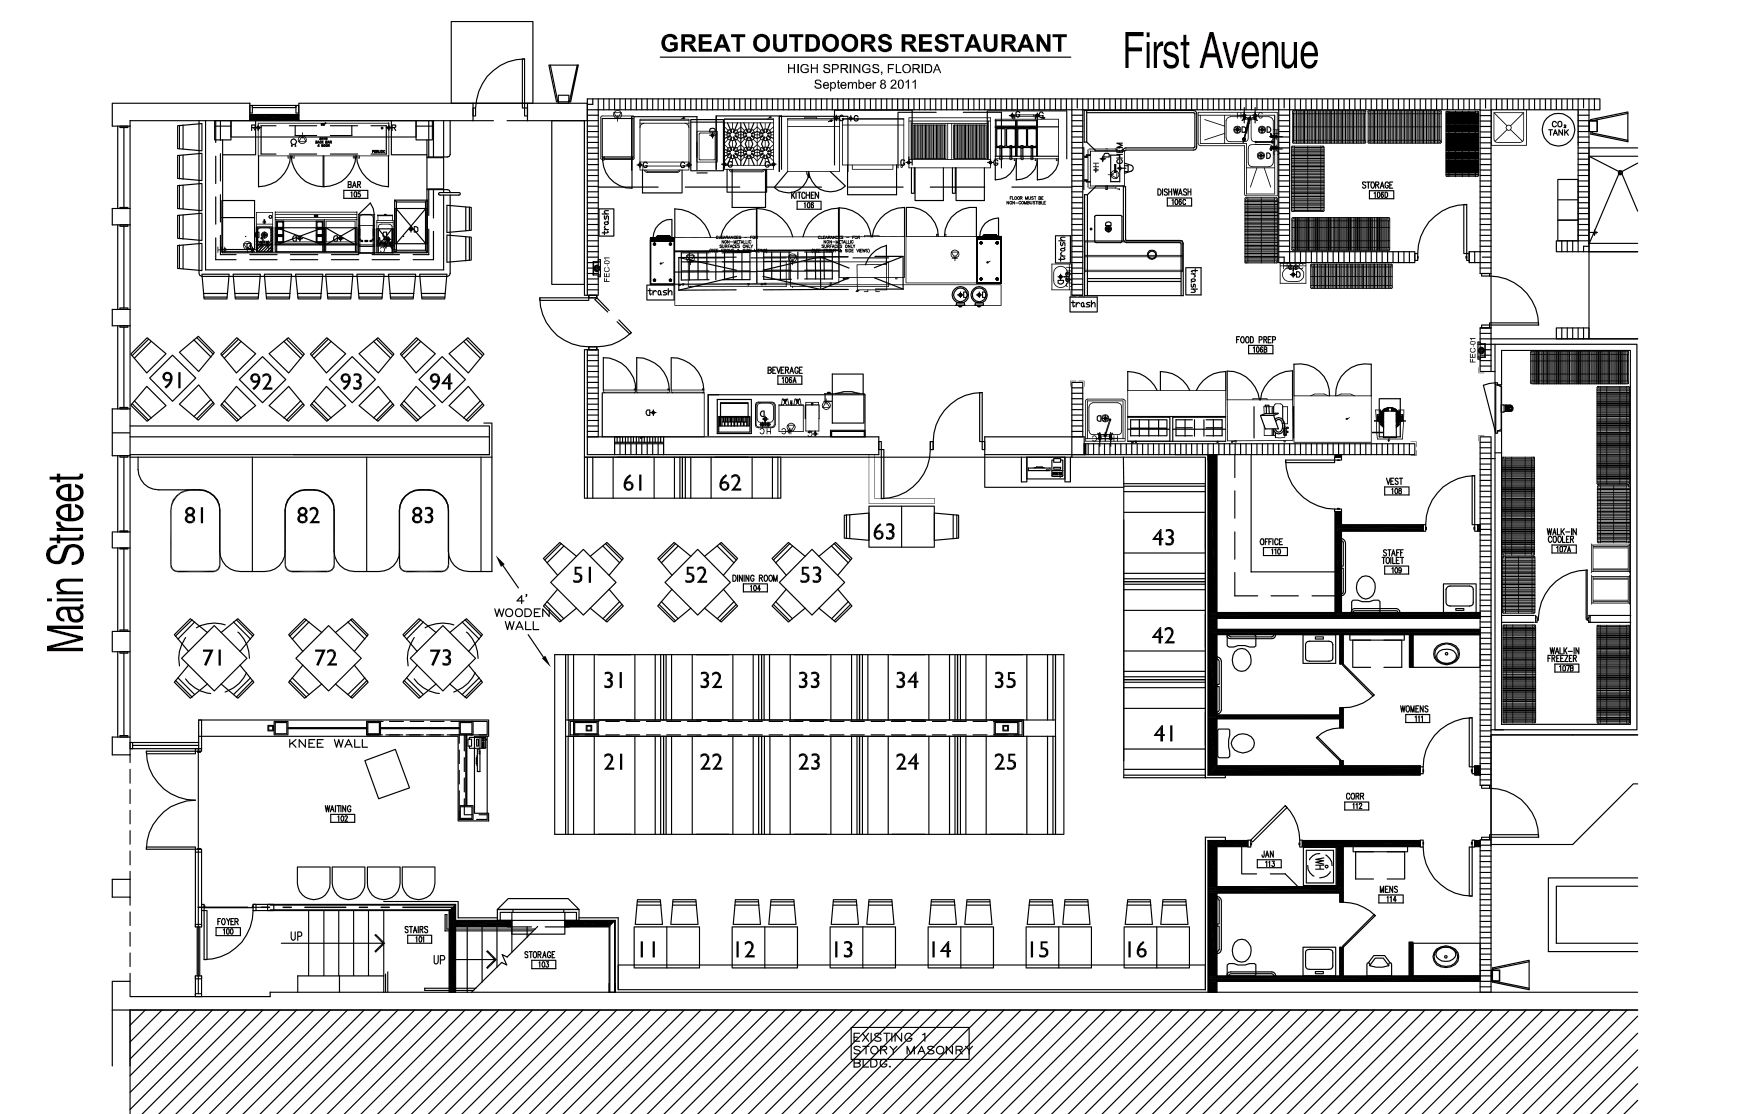 Restaurant interior design floor plan t m v i google Rest house plan